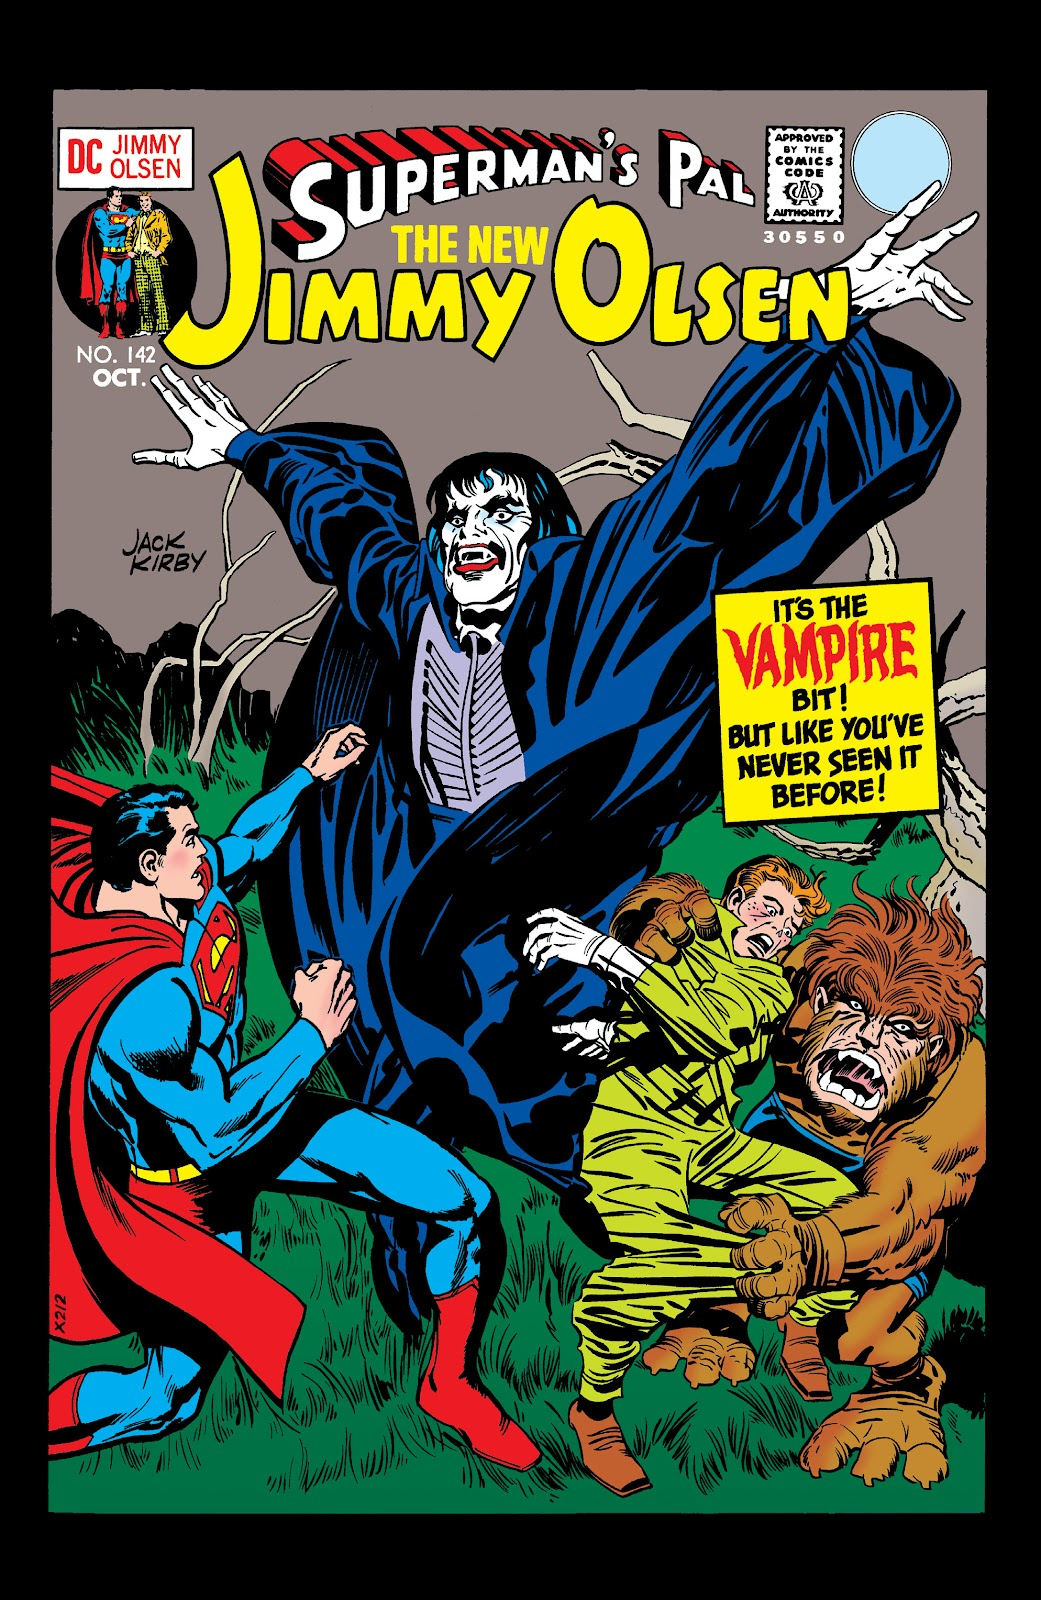 Read online Superman's Pal, Jimmy Olsen by Jack Kirby comic -  Issue # TPB (Part 2) - 90